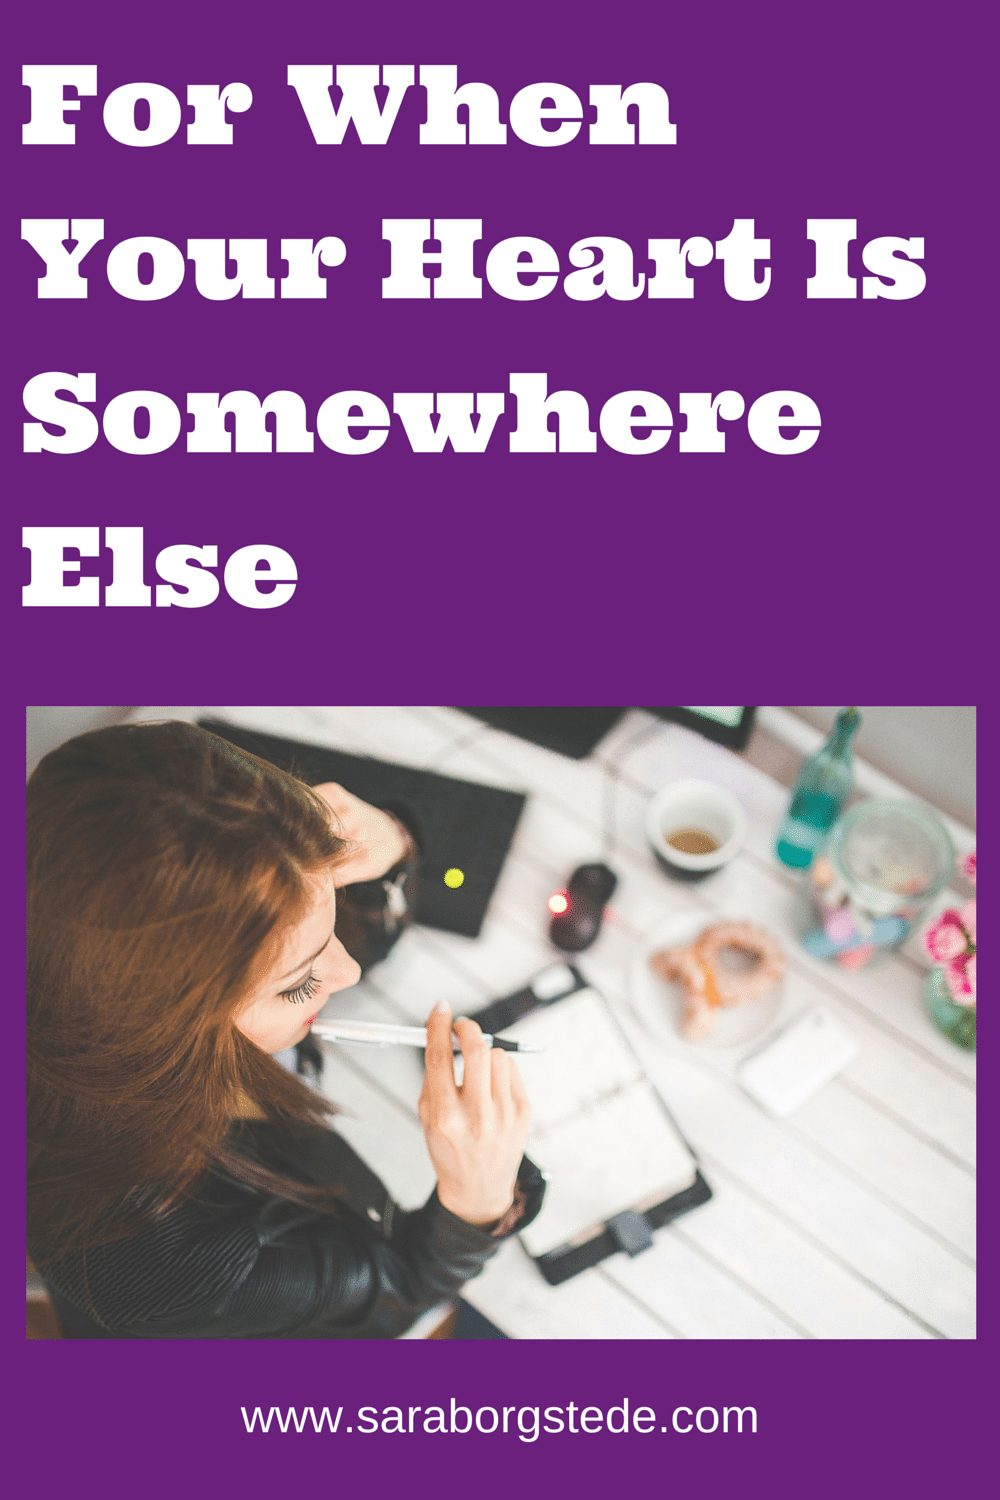 For When Your Heart is Somewhere Else